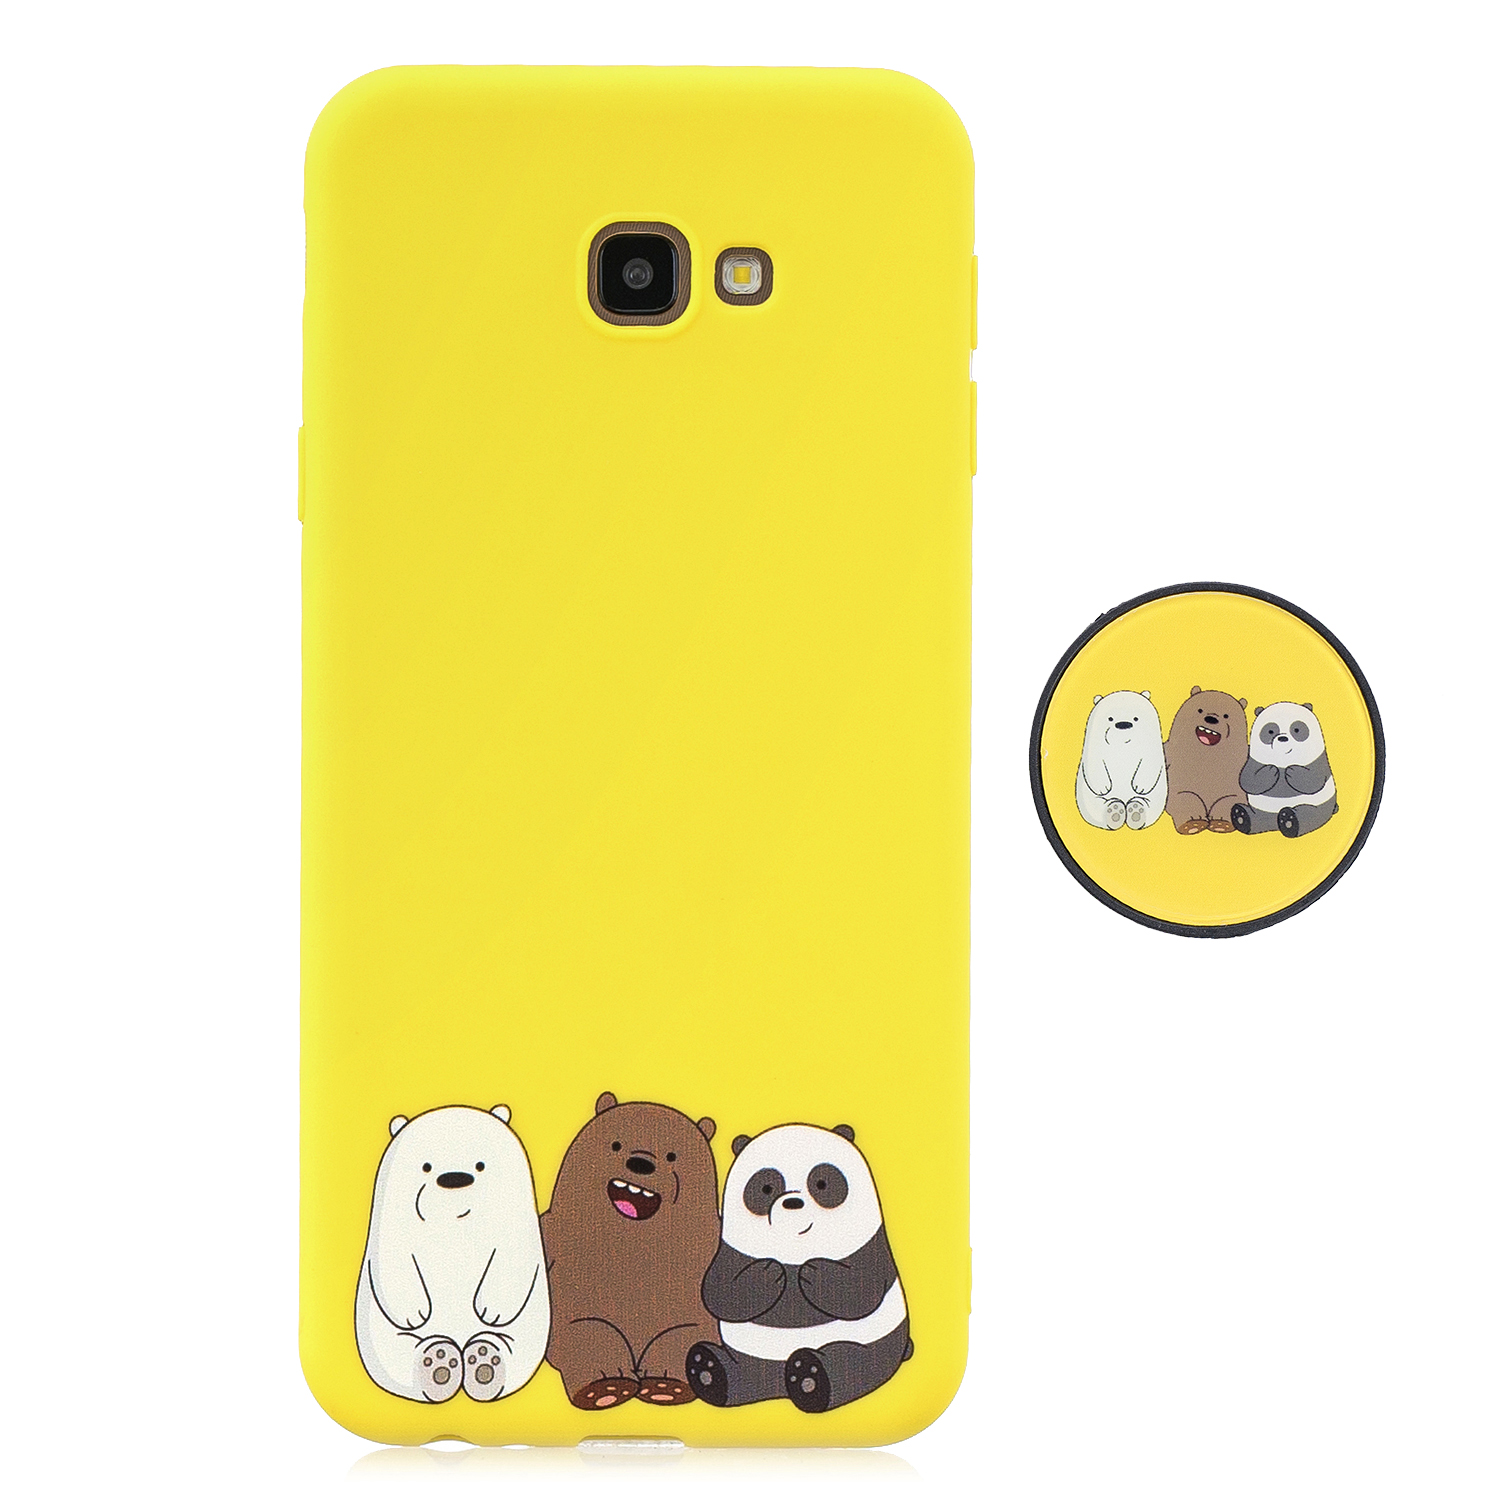 For Samsung J4 PLUS Non-Slip TPU Bumper Case Shockproof Full-Body Protective Case Cover with Adjustable Bracket 7